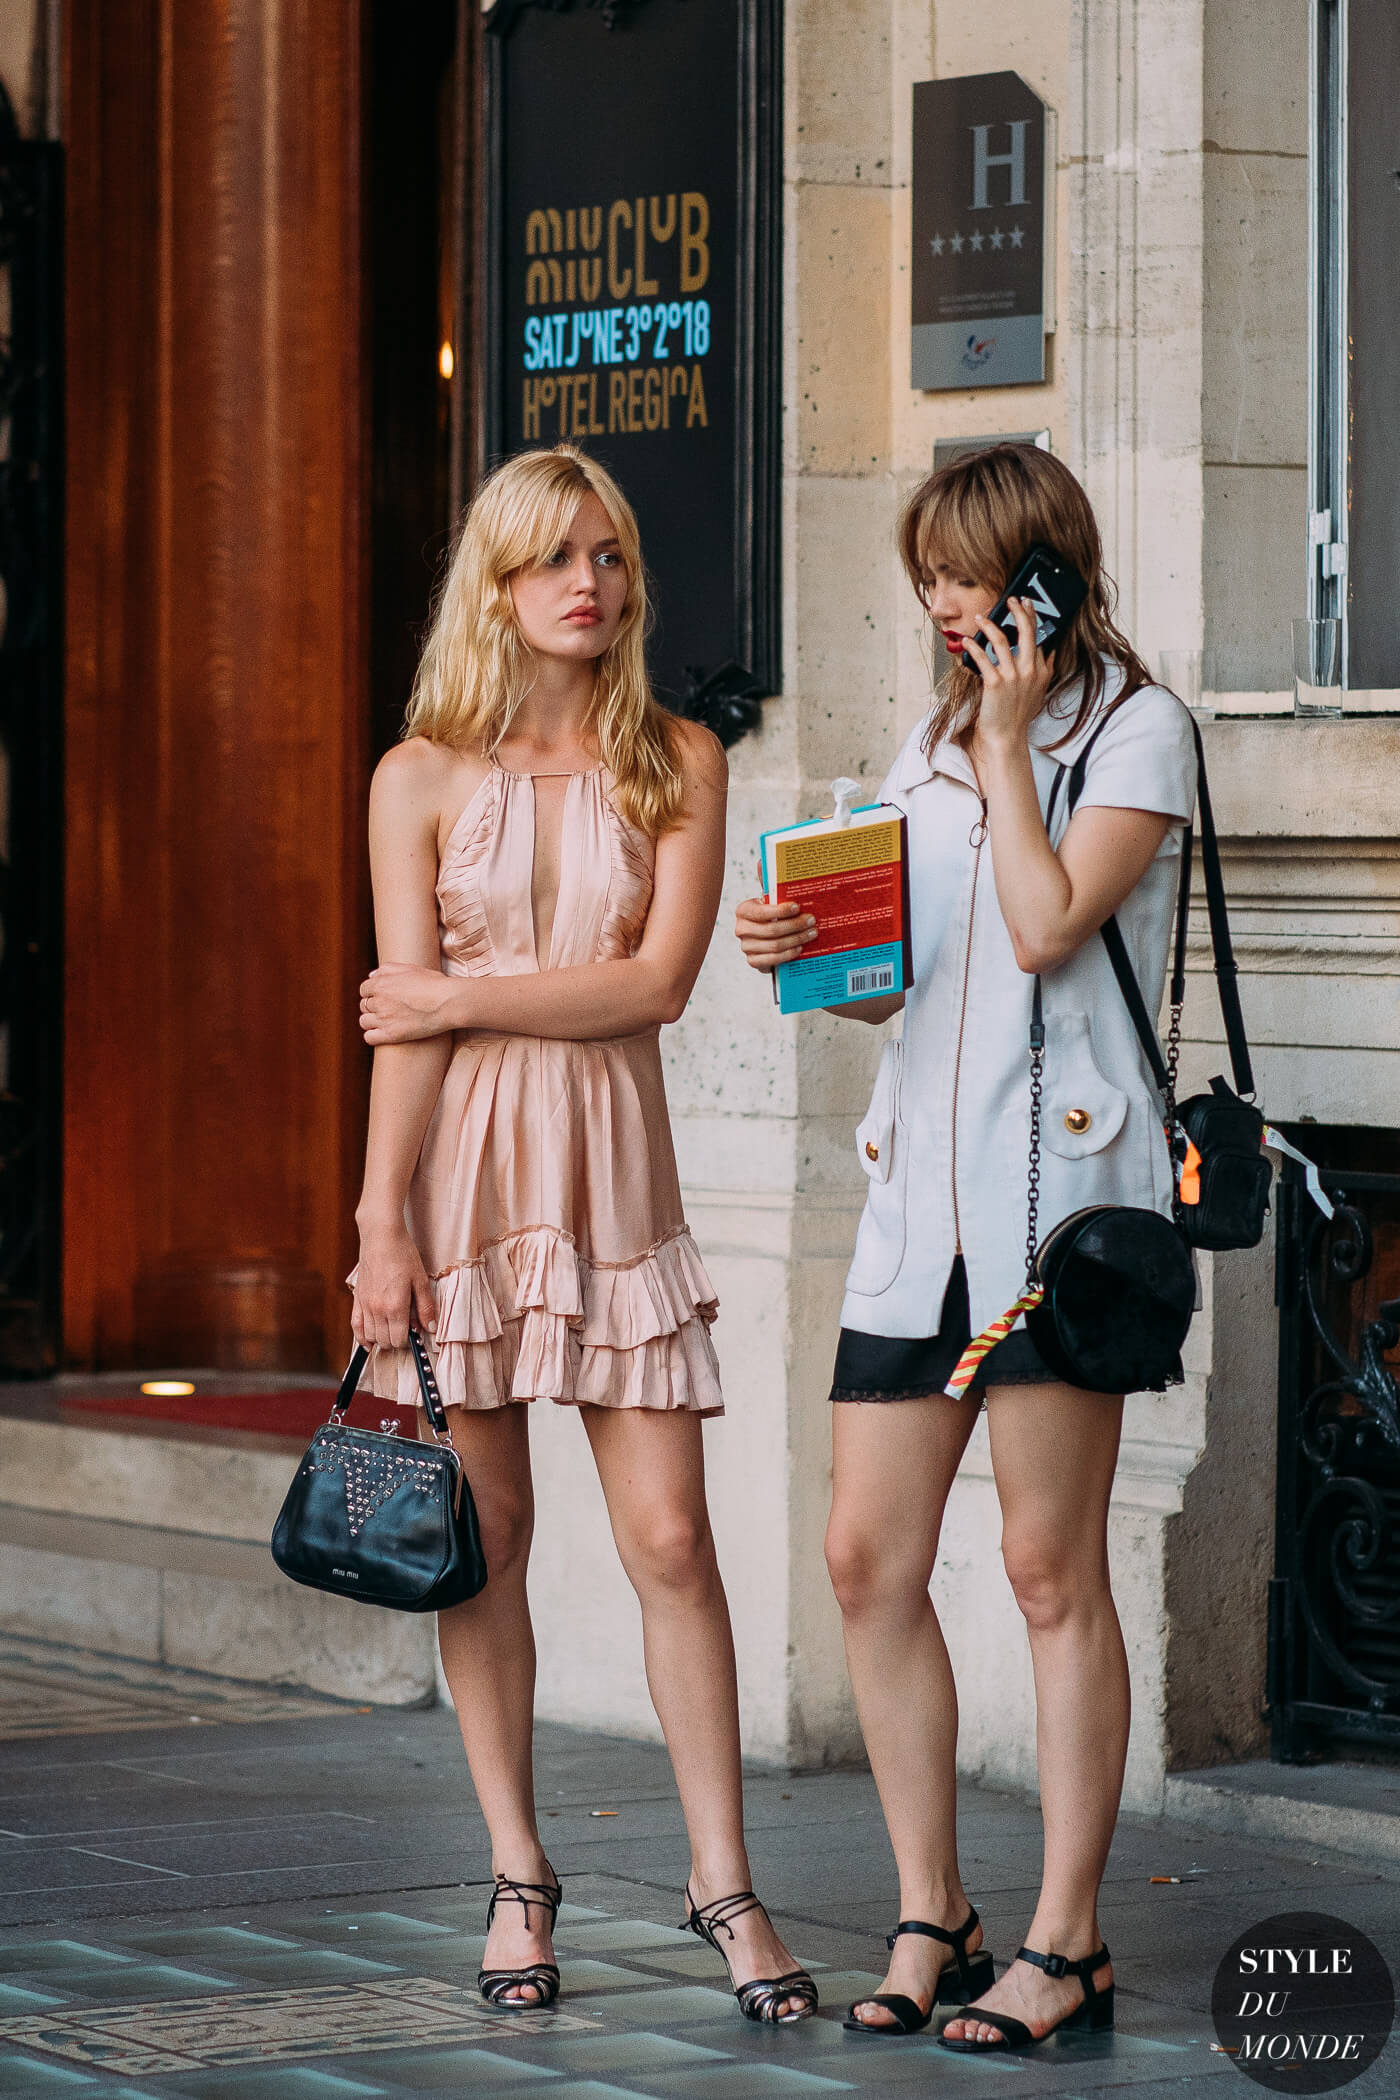 Georgia-May-Jagger-and-Suki-Waterhouse-by-STYLEDUMONDE-Street-Style-Fashion-Photography20180630_48A2728